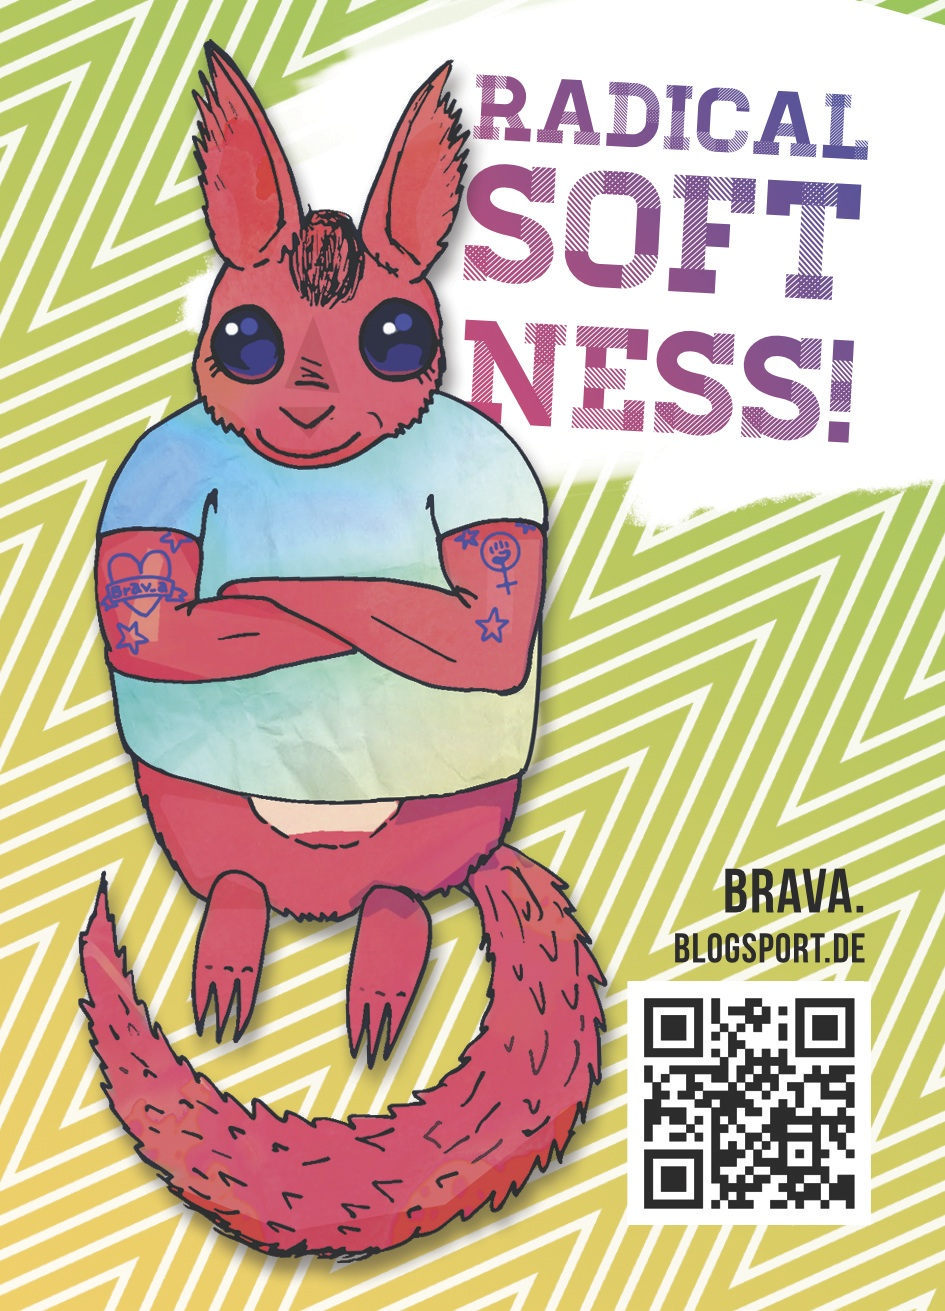 Brav_a-Sticker: Radical Softness